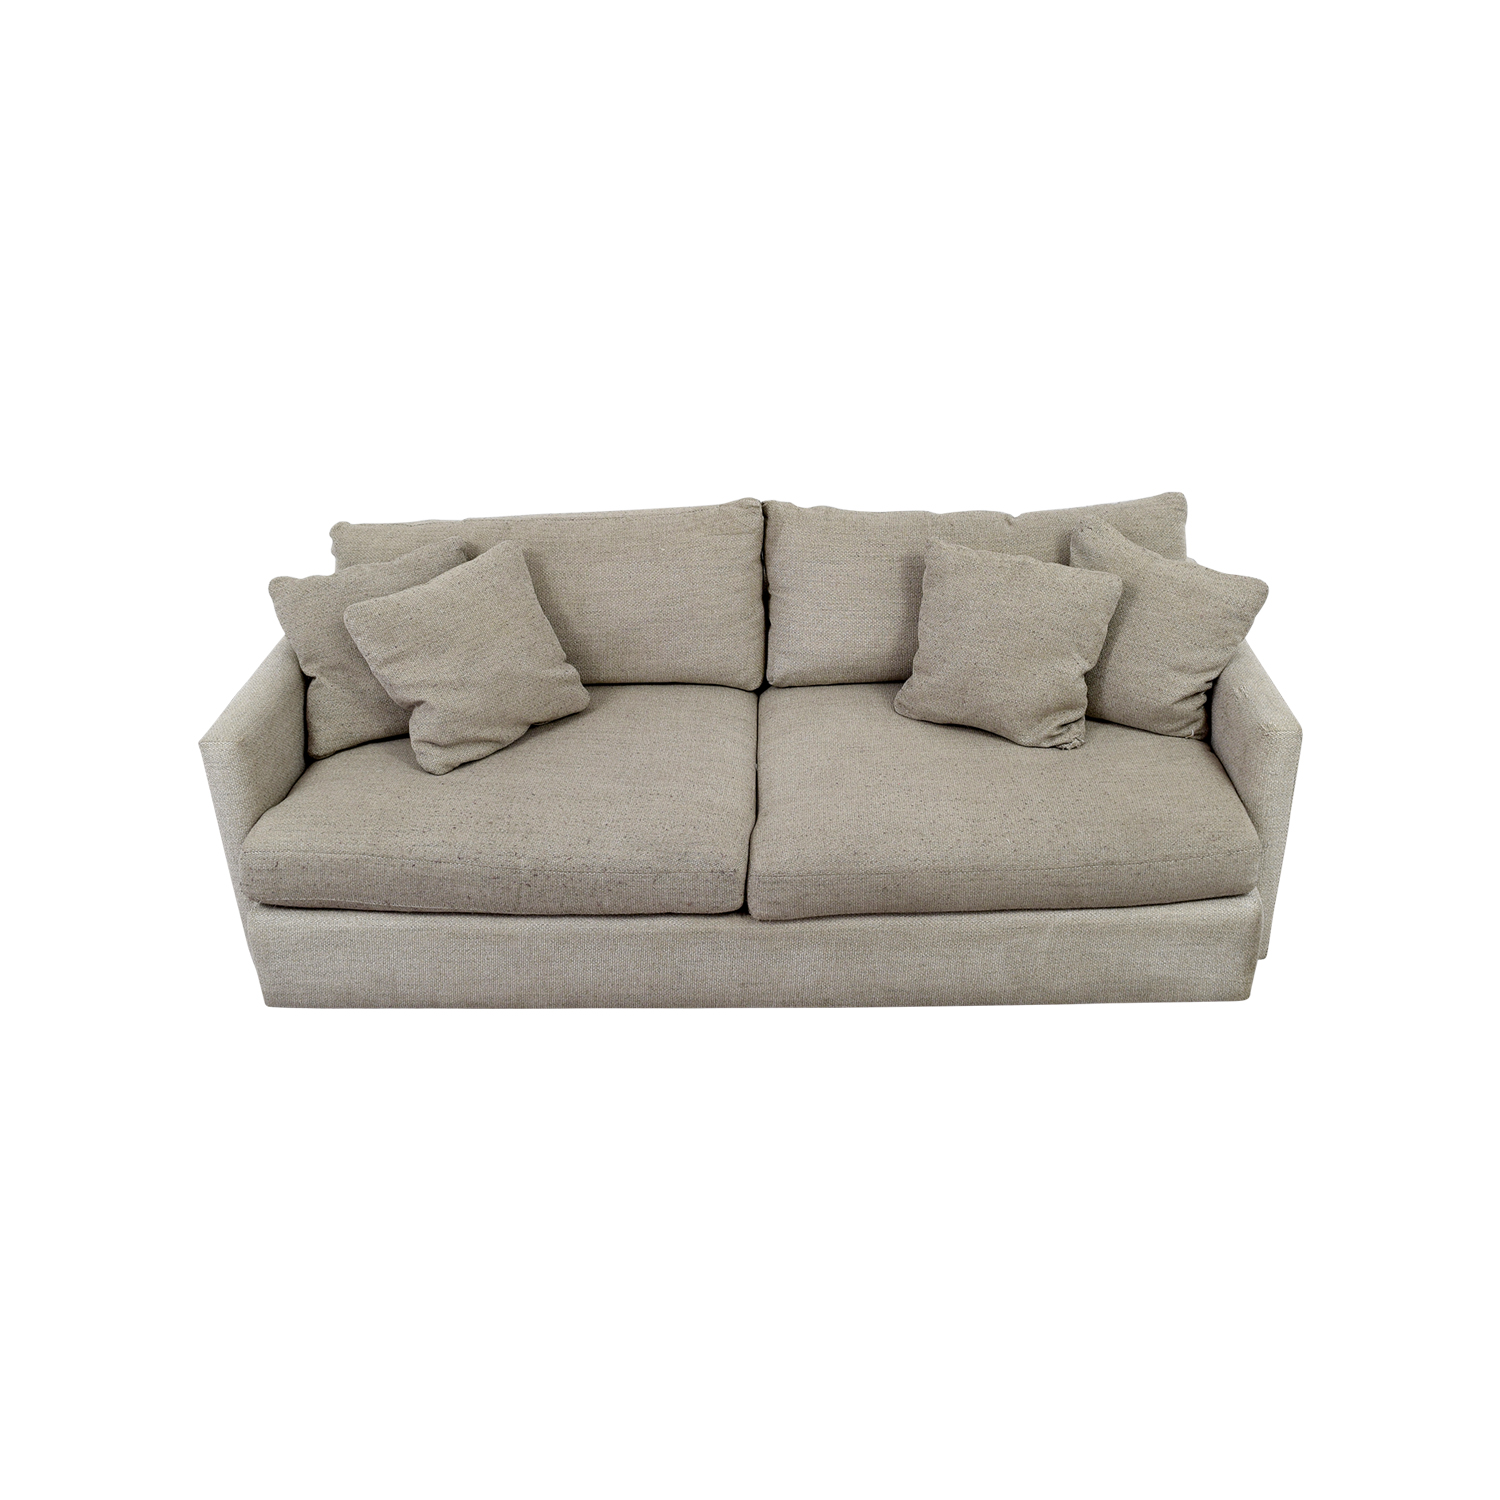 Crate & Barrel Crate & Barrel Cream Two-Cushion Sofa used